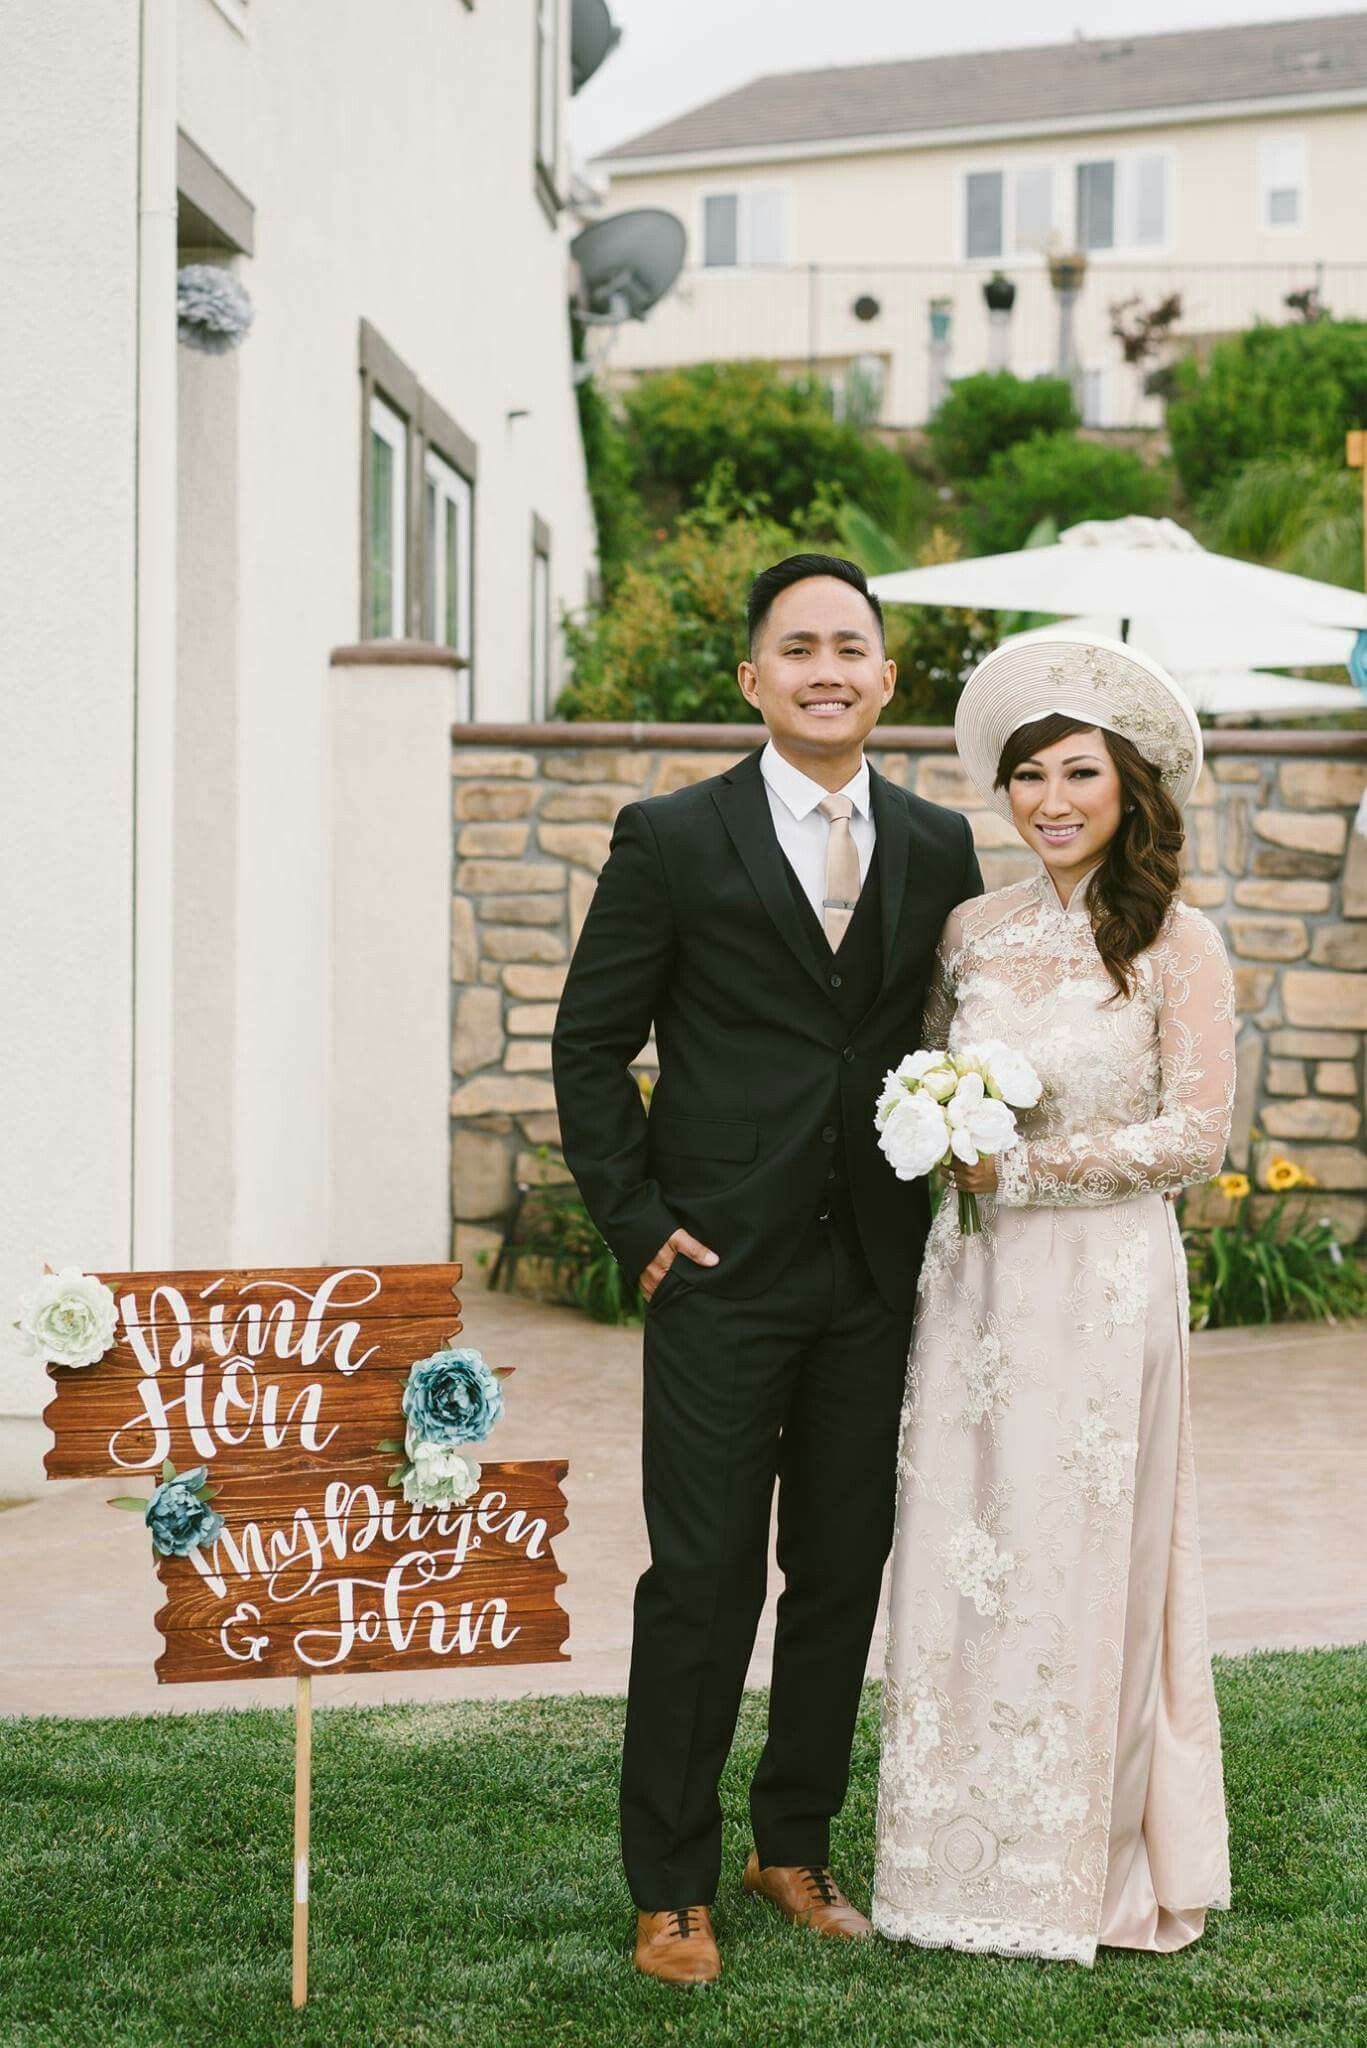 Interesting: Lace Ao Dai Nguyet & Nien's Engagement Ceremony » Thao Vu  Photography Blog | Bridal Party | Pinterest | Lace ao dai, Ao dai and  Engagement